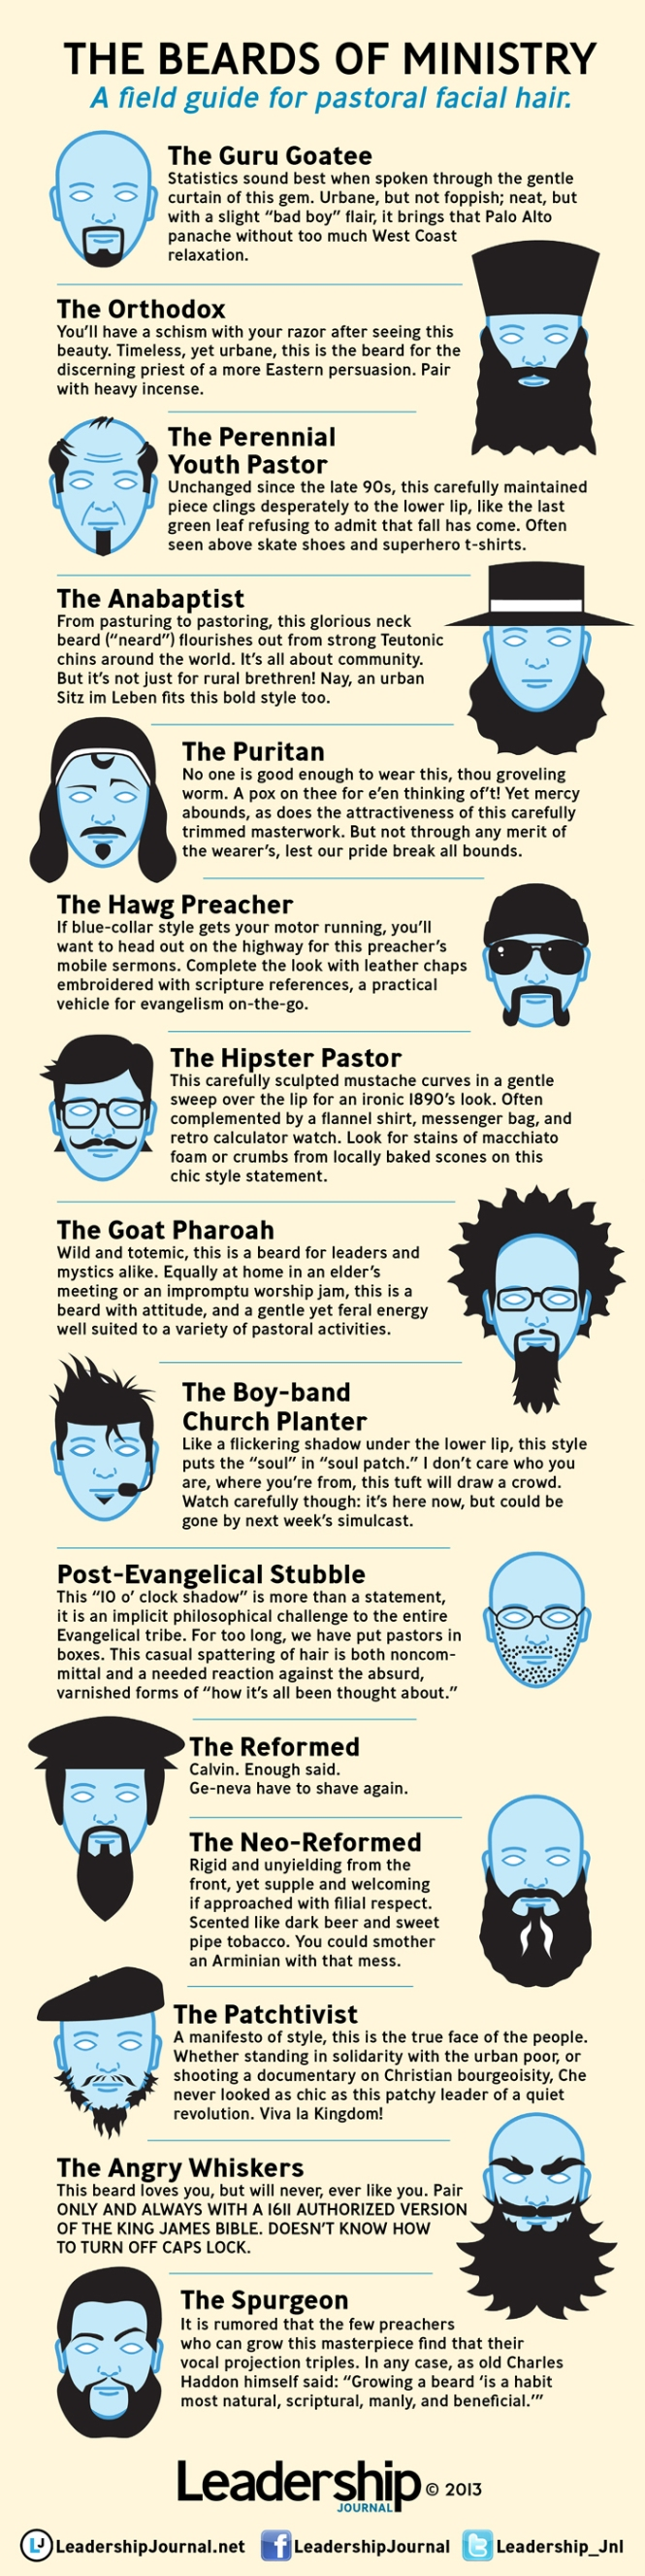 MinistryBeards